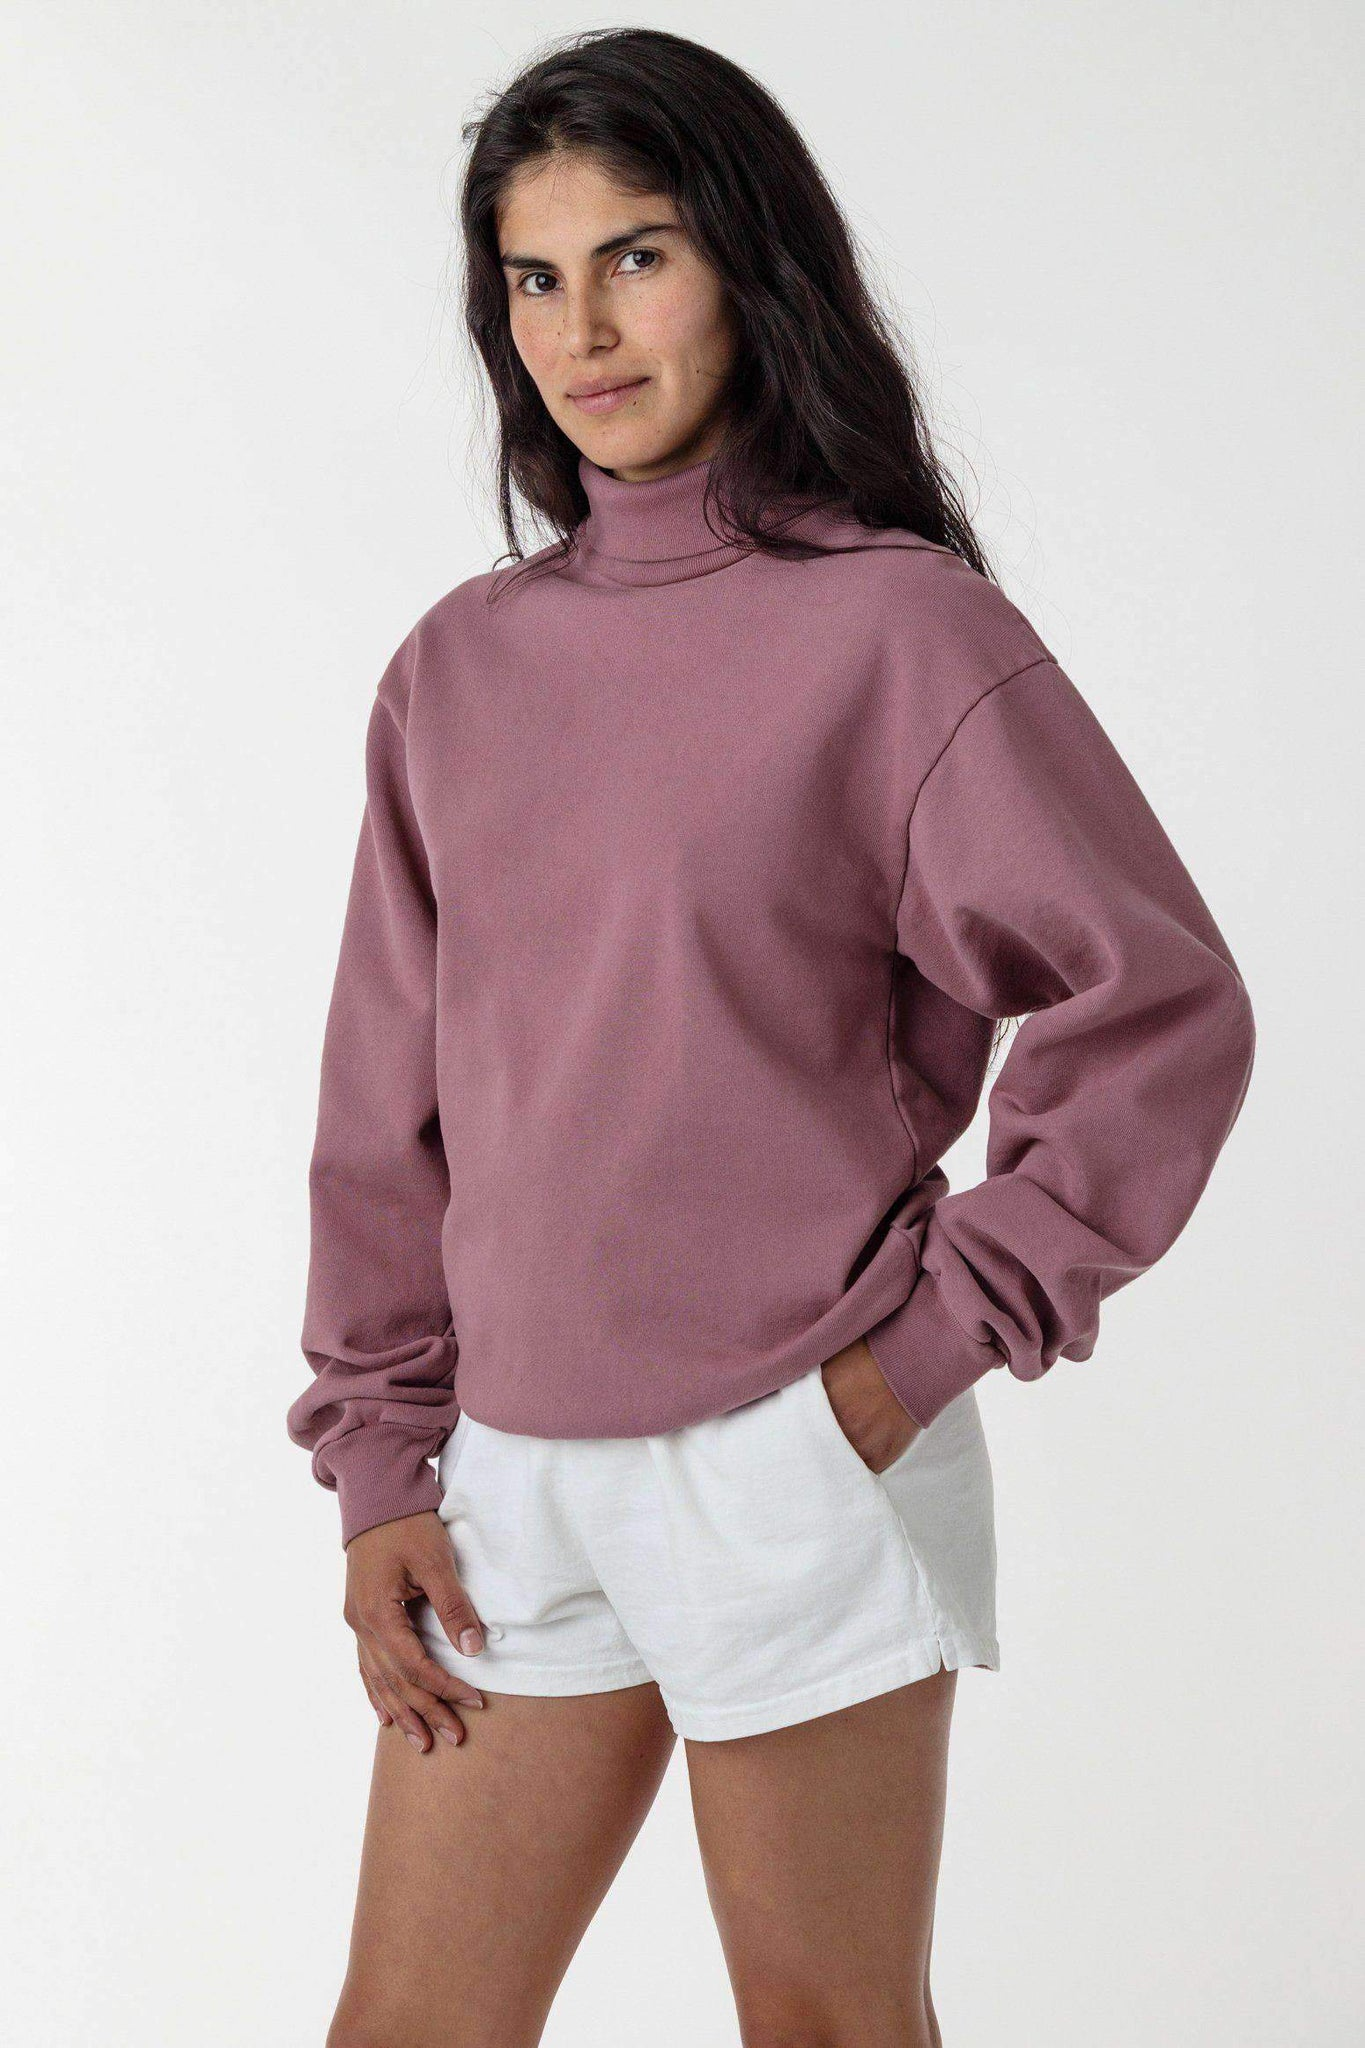 HF13GD Unisex - 14 oz Heavy Fleece Turtleneck Sweatshirt Sweatshirt Los Angeles Apparel Mauve XS